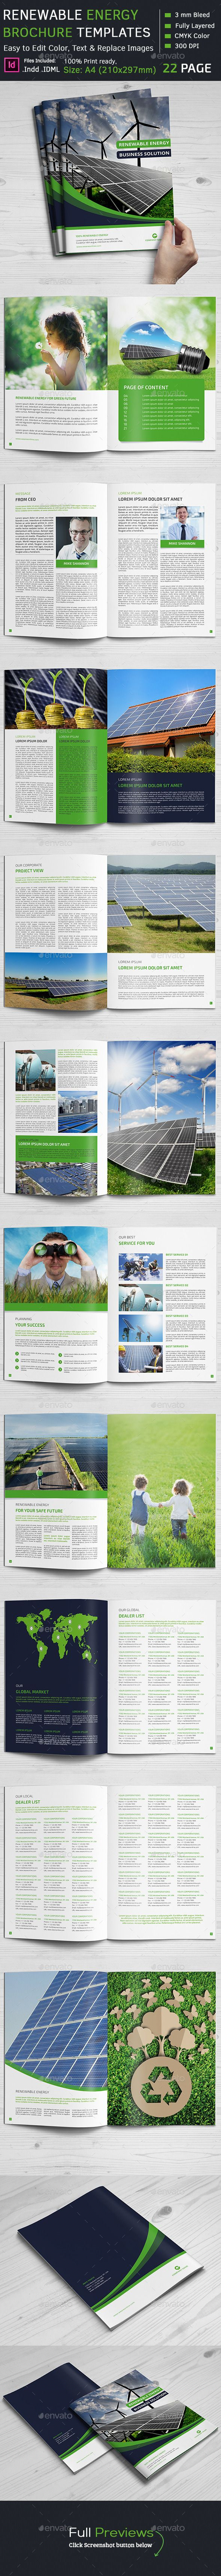 Renewable Energy Brochure Template #design Download: http://graphicriver.net/item/renewable-energy-brochure/12165777?ref=ksioks